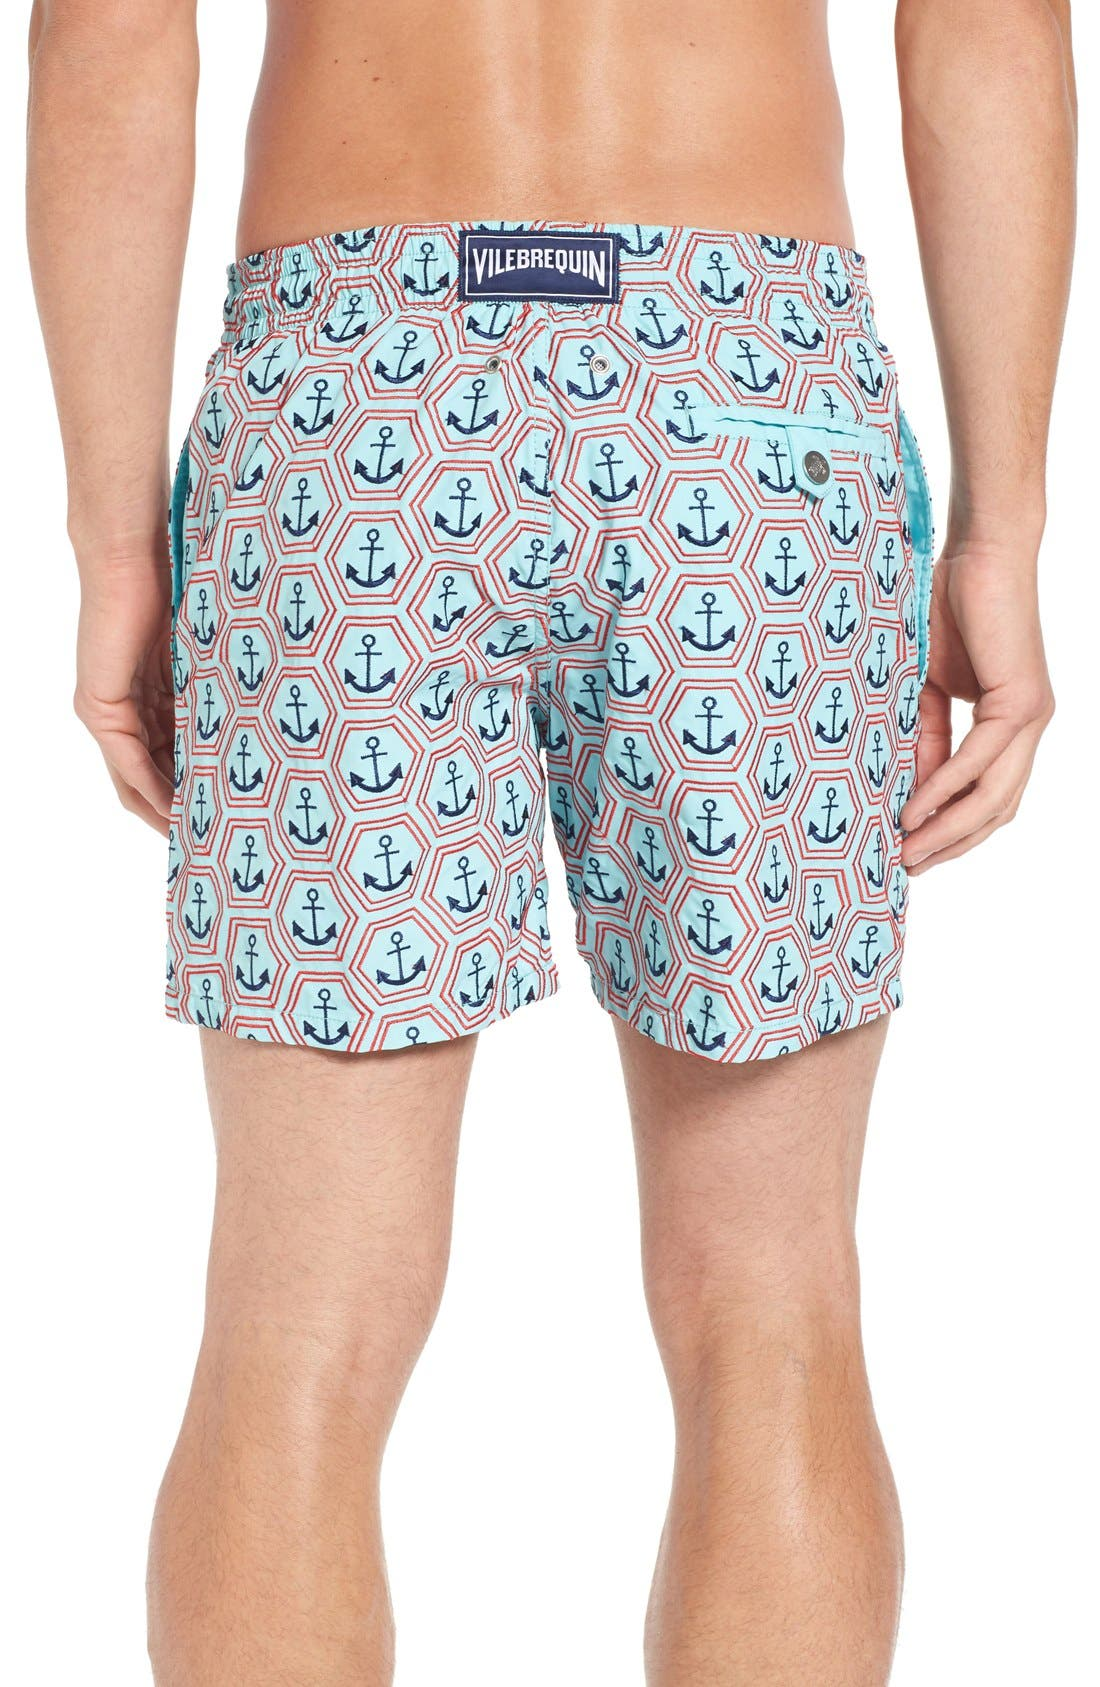 Vilbrequin Anchor Embroidered Swim Trunks,                             Alternate thumbnail 2, color,                             Lagoon